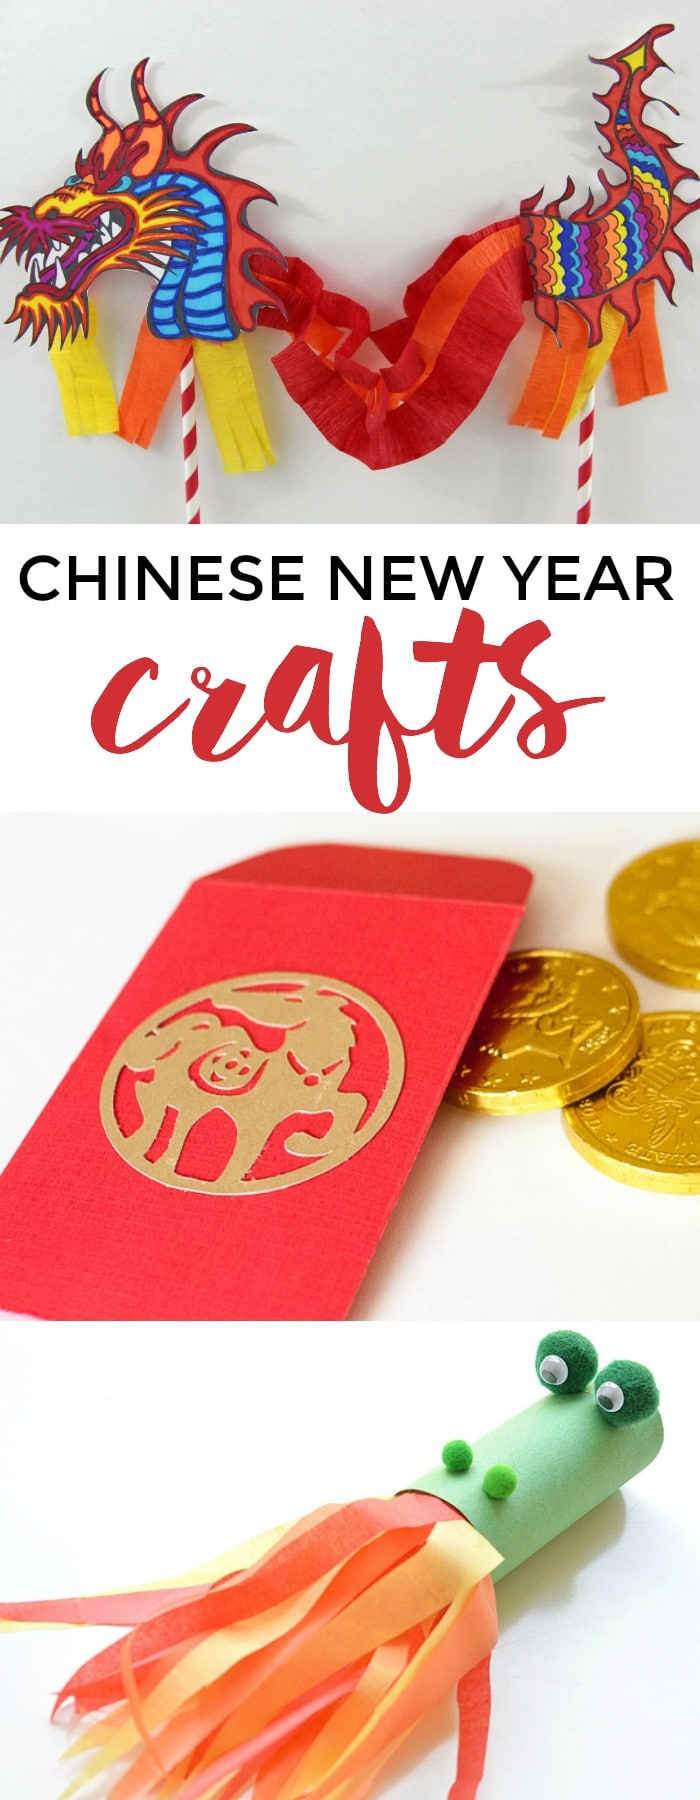 To kick off your Chinese New Year celebrations, here are 10 creative Chinese New Year crafts for kids. via @somewhatsimple